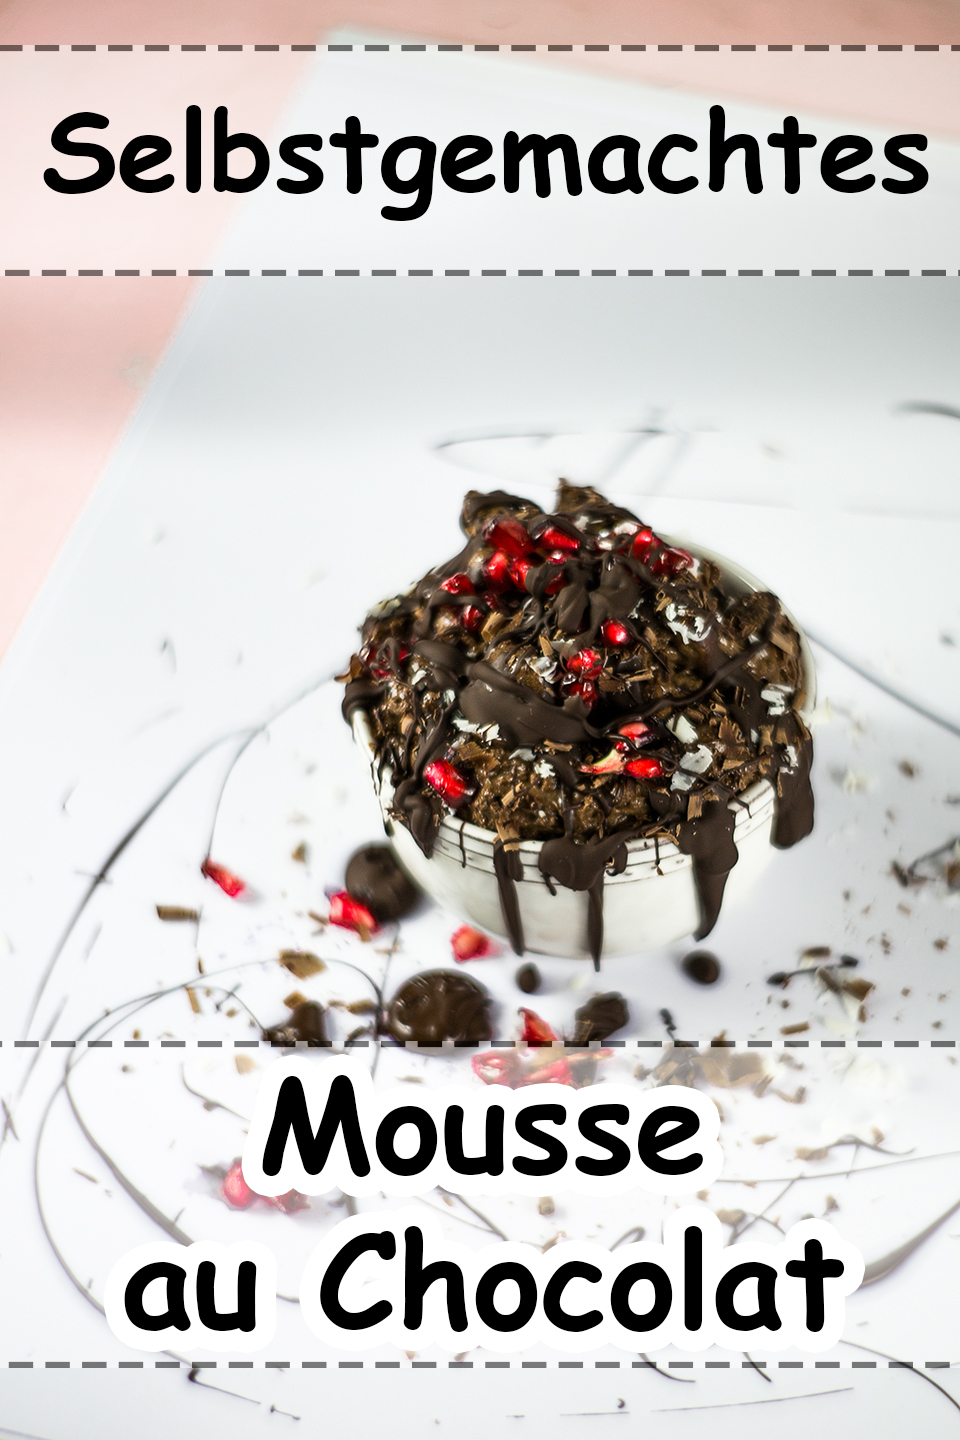 Mousse au Chocolat selbstgemacht